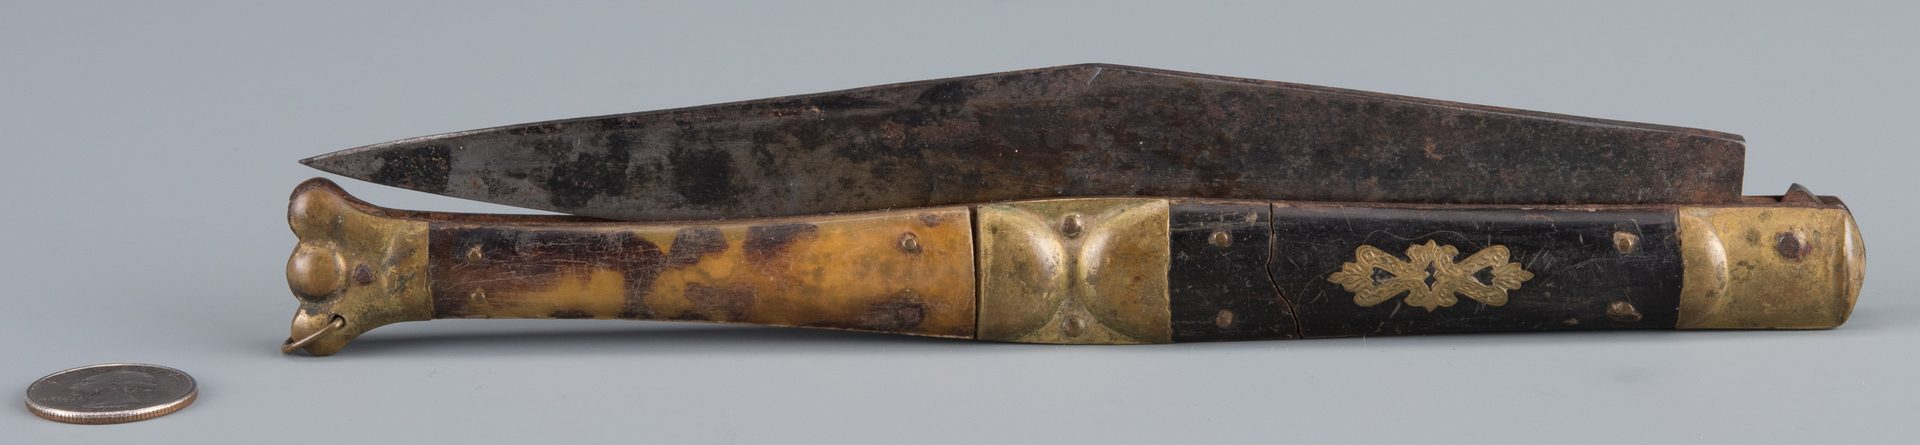 Lot 245: 19th c. Hunting Knife, Girodias